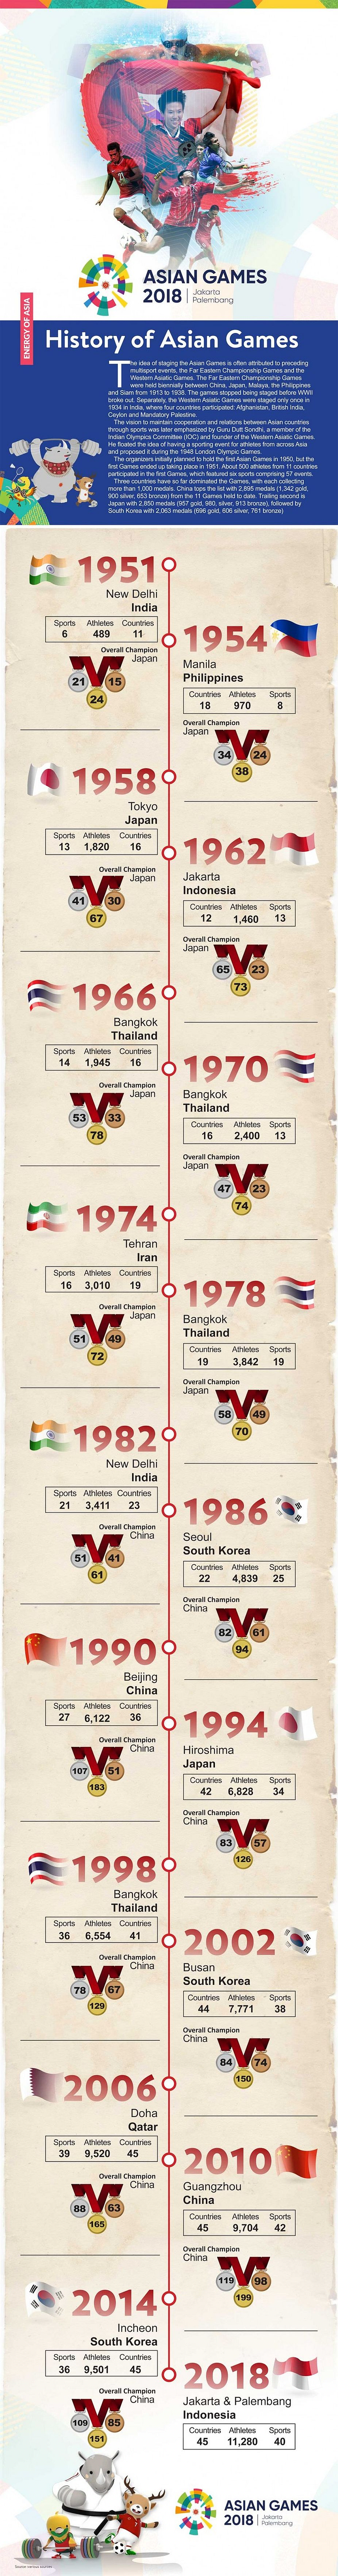 Asian Games, infographic